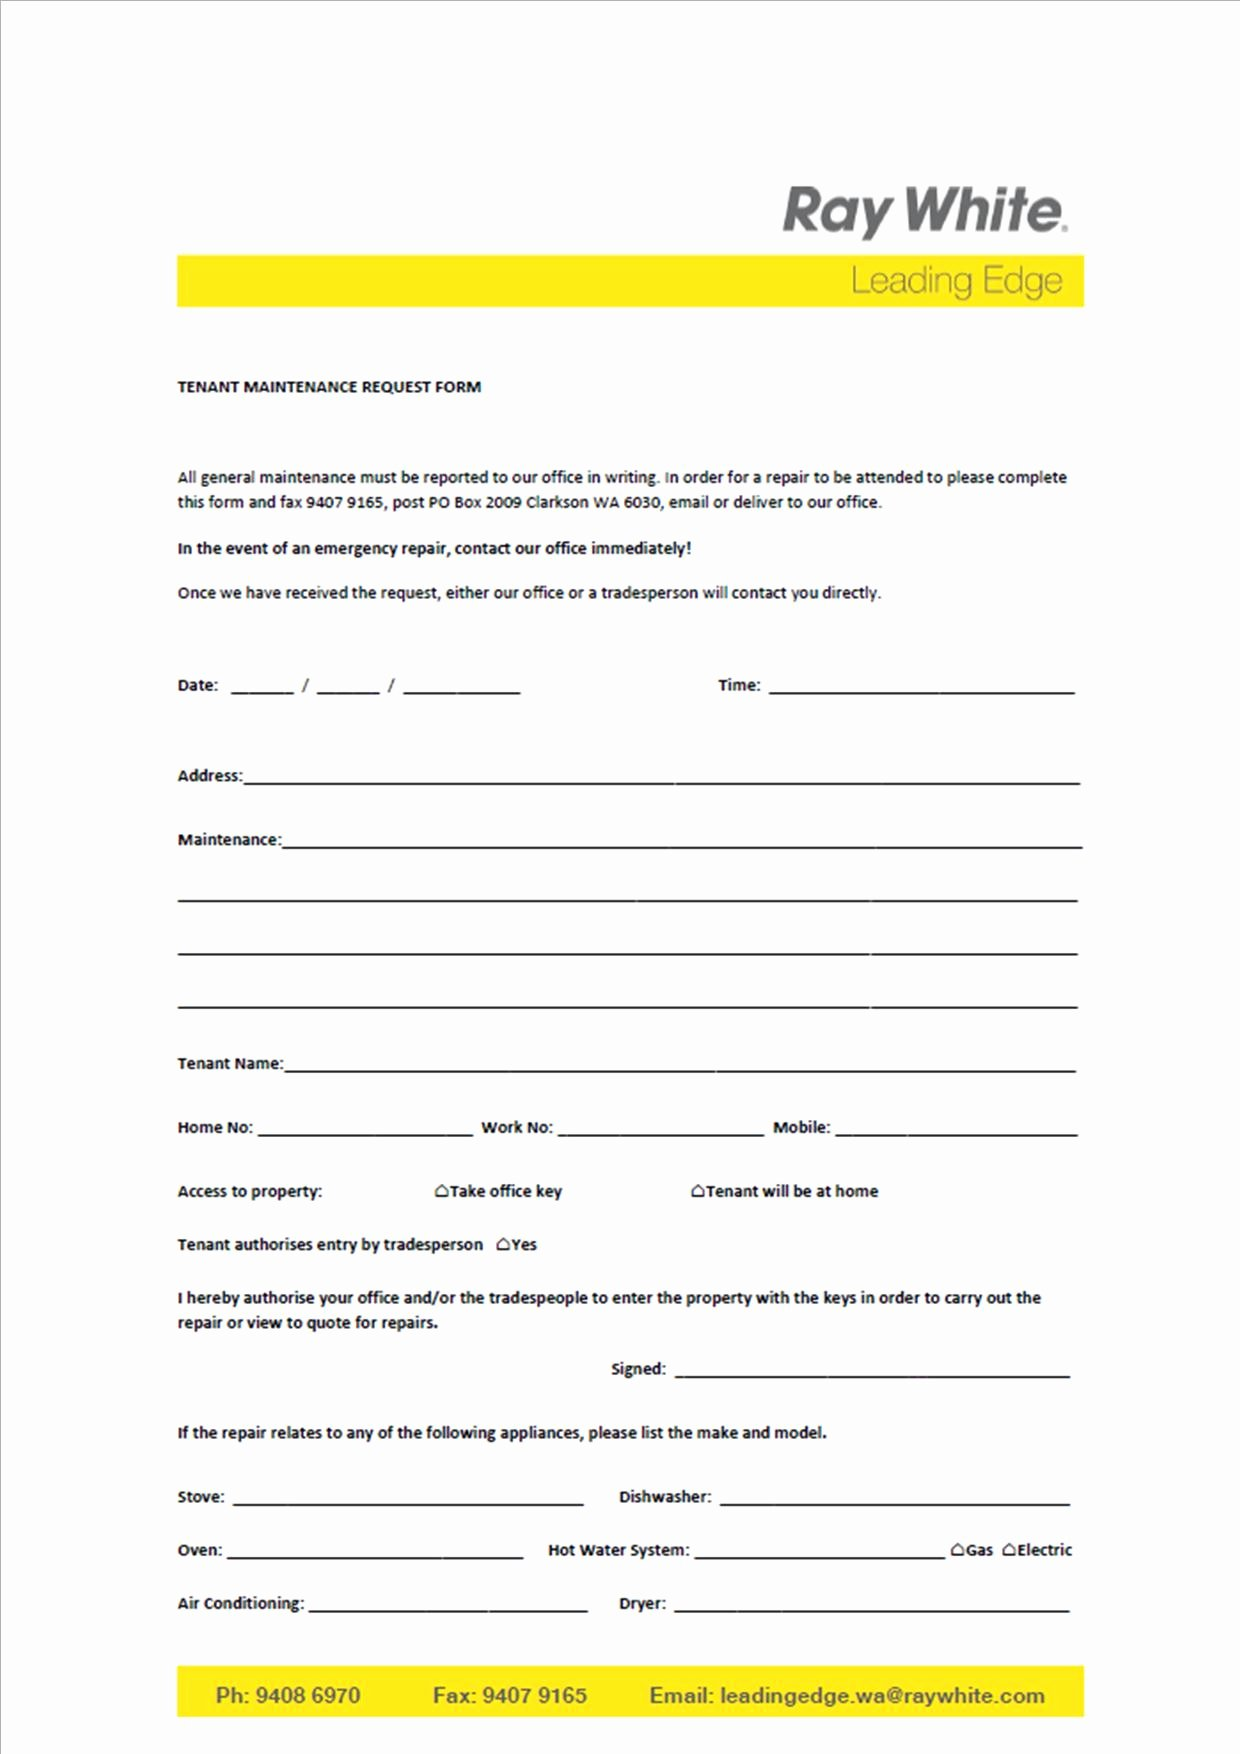 Tenant Maintenance Request form Template Best Of Sample I Follow Up Letter to Landlord with Instructions